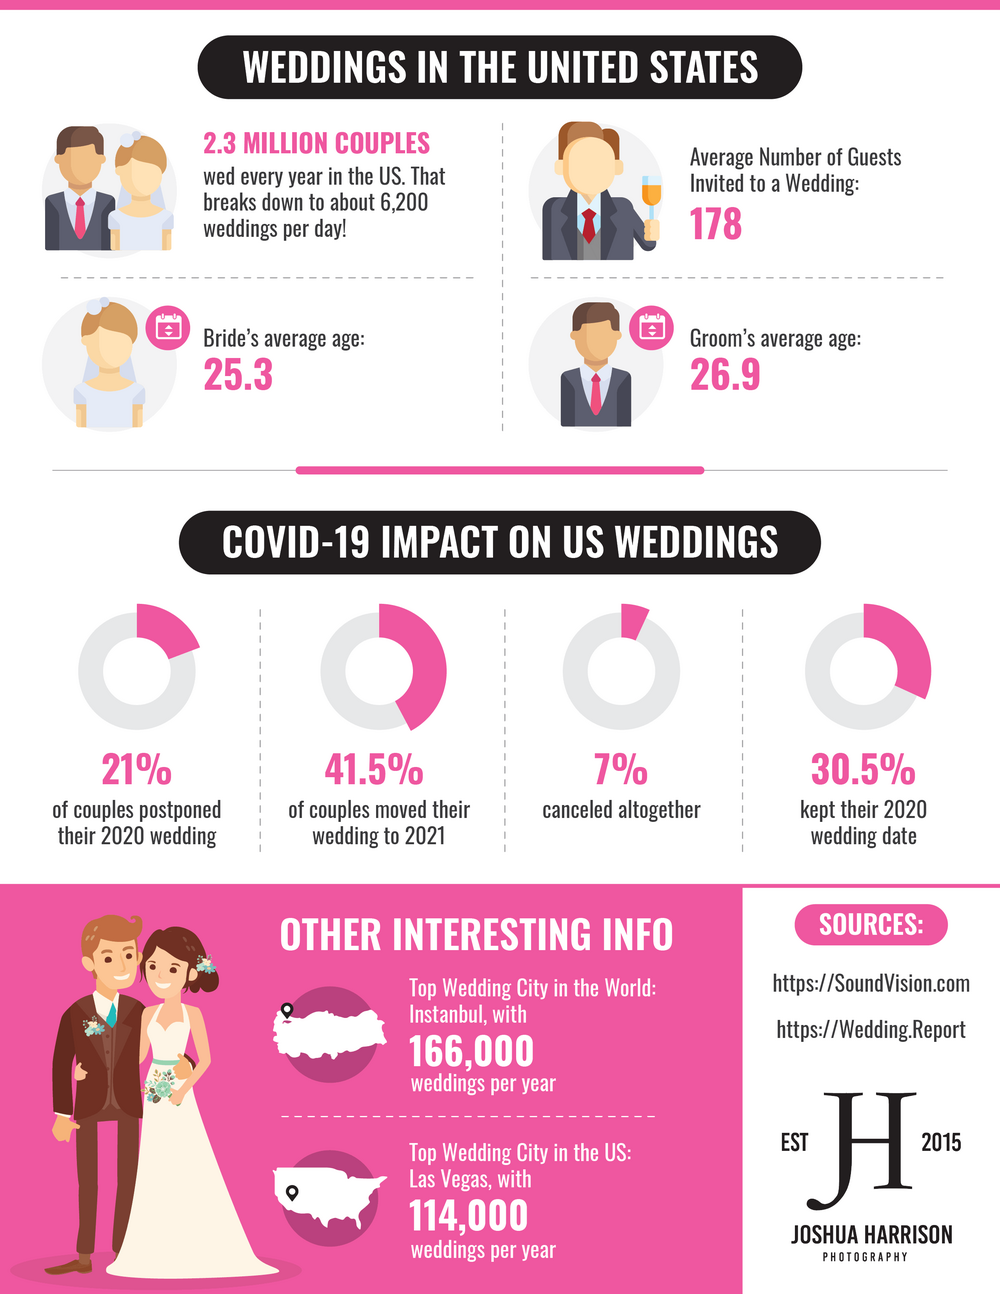 Weddings in the United States by Joshua Harrison